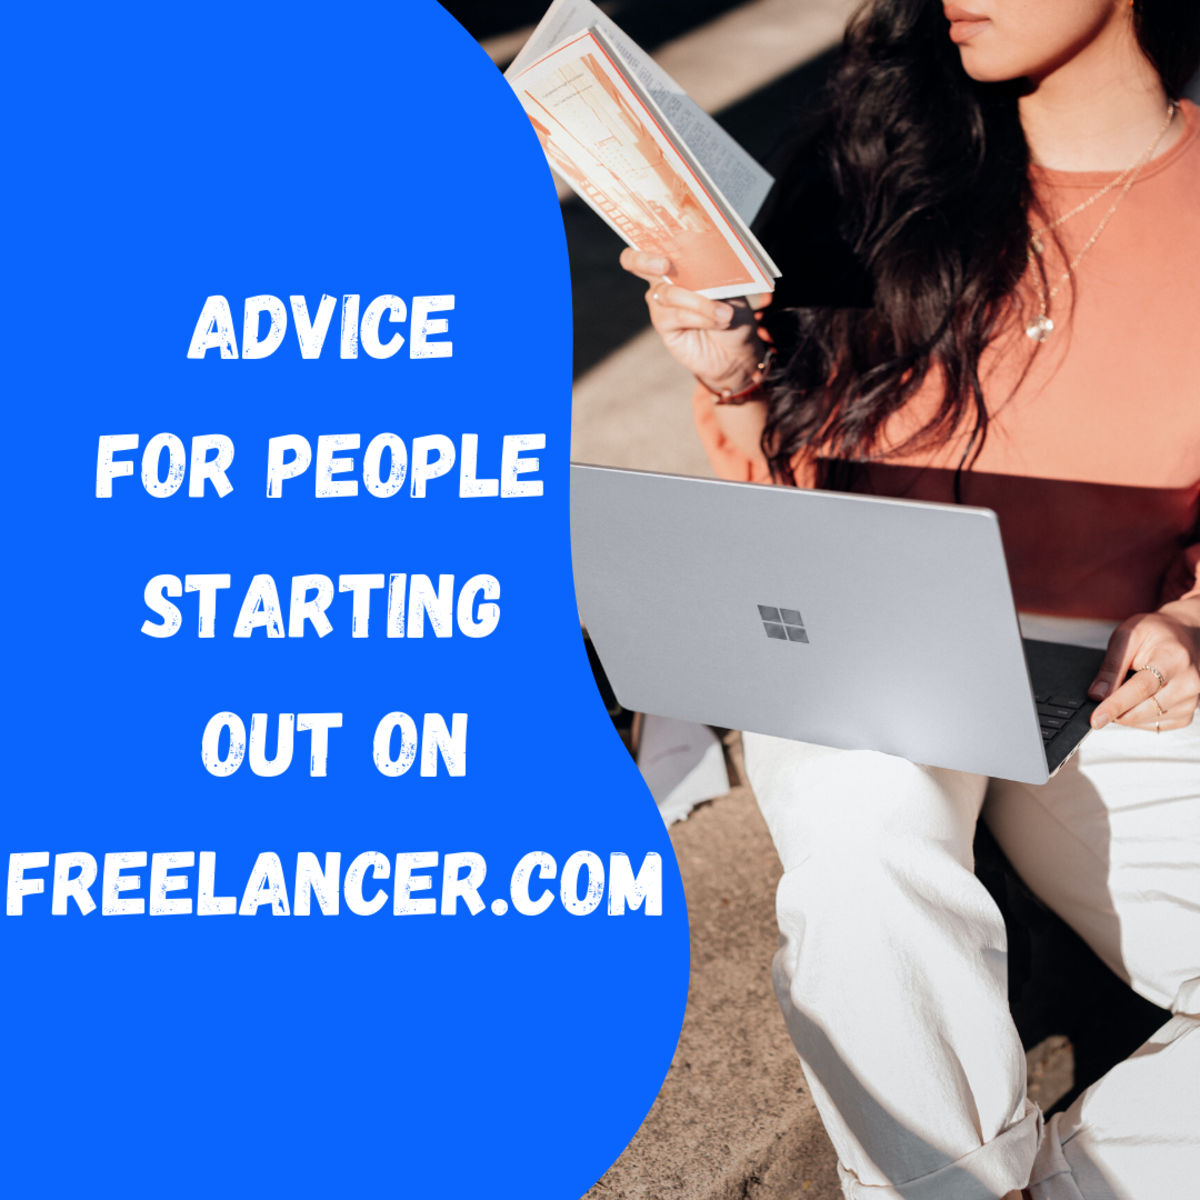 Don't get scammed! Learn how to use Freelance.com the right way.